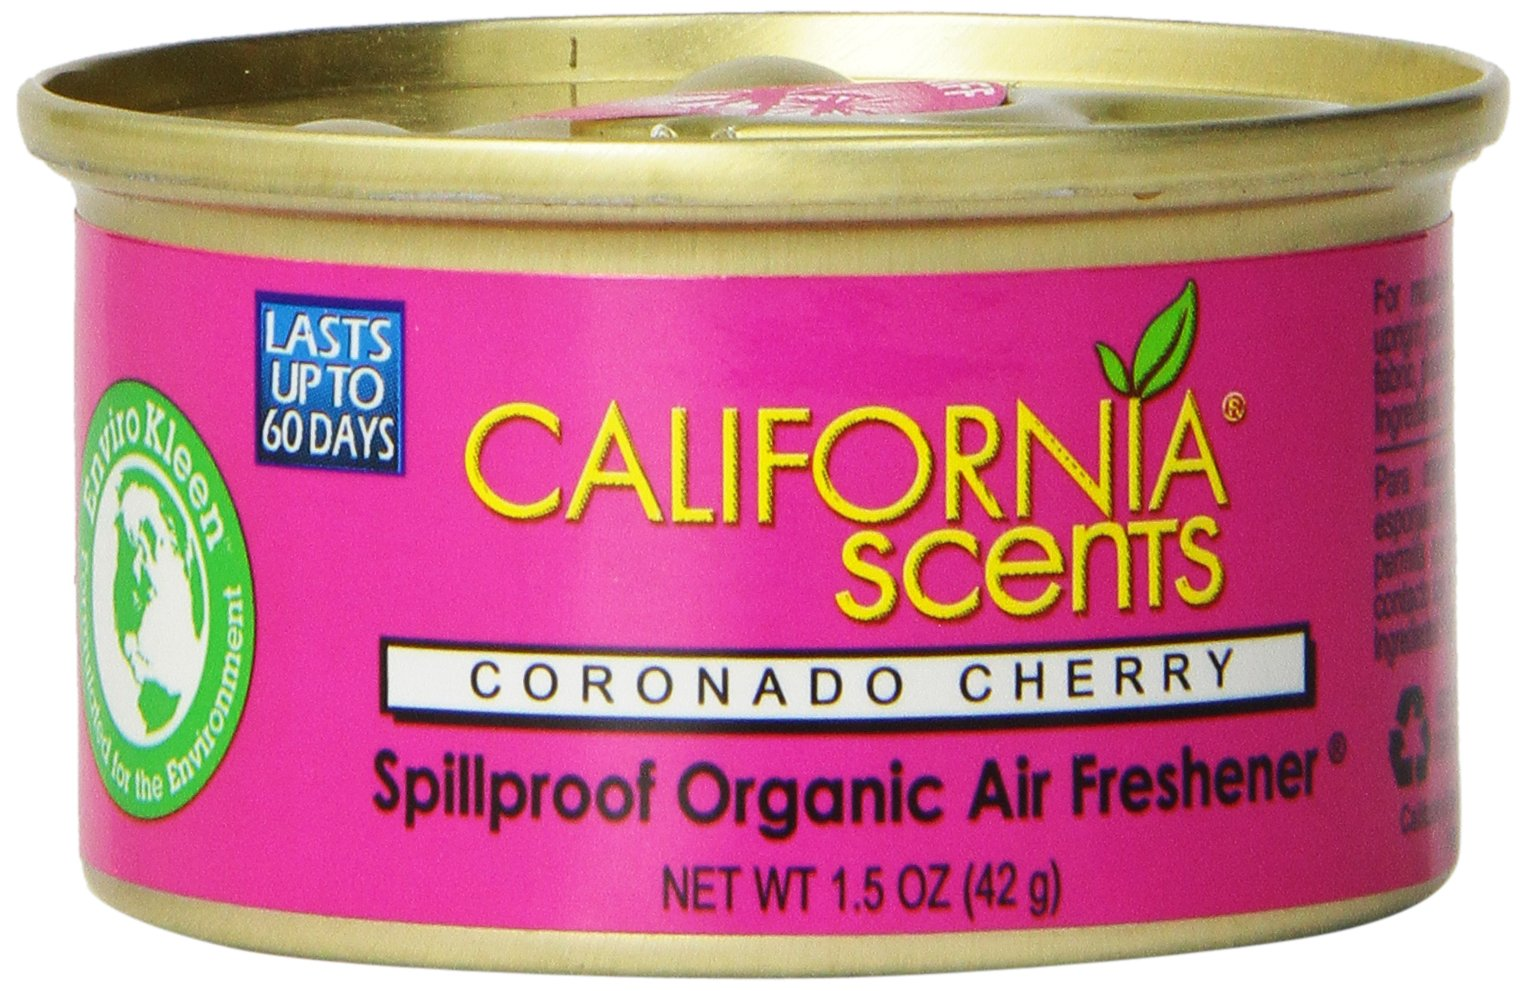 Amazon.com: California Scents Spillproof Organic Air ...